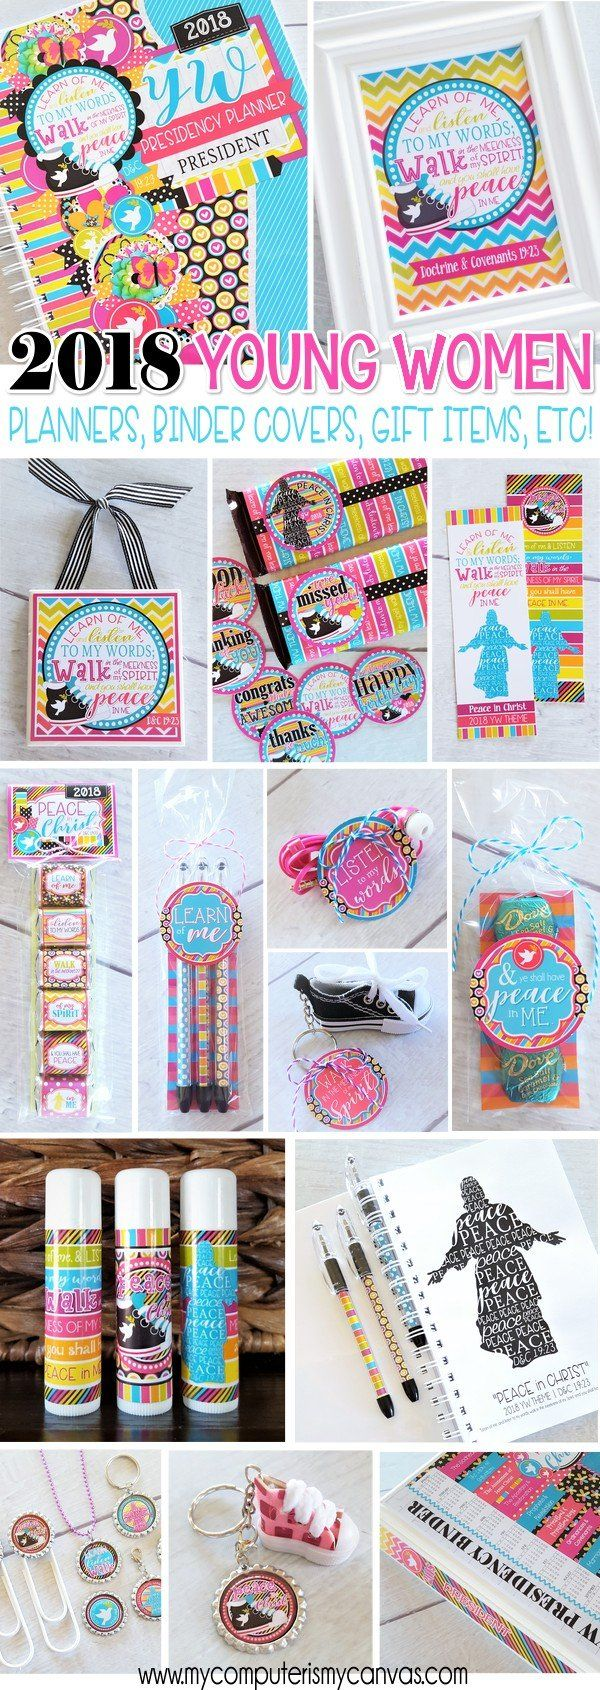 TONS of printables and gift ideas for the 2018 YW Theme PEACE IN CHRIST! Presidency Planners, binder covers, bookmarks, lip balm wrappers, candy bar wrappers, scripture art, journals, nugget wrappers and more! #mycomputerismycanvas #peaceinchrist